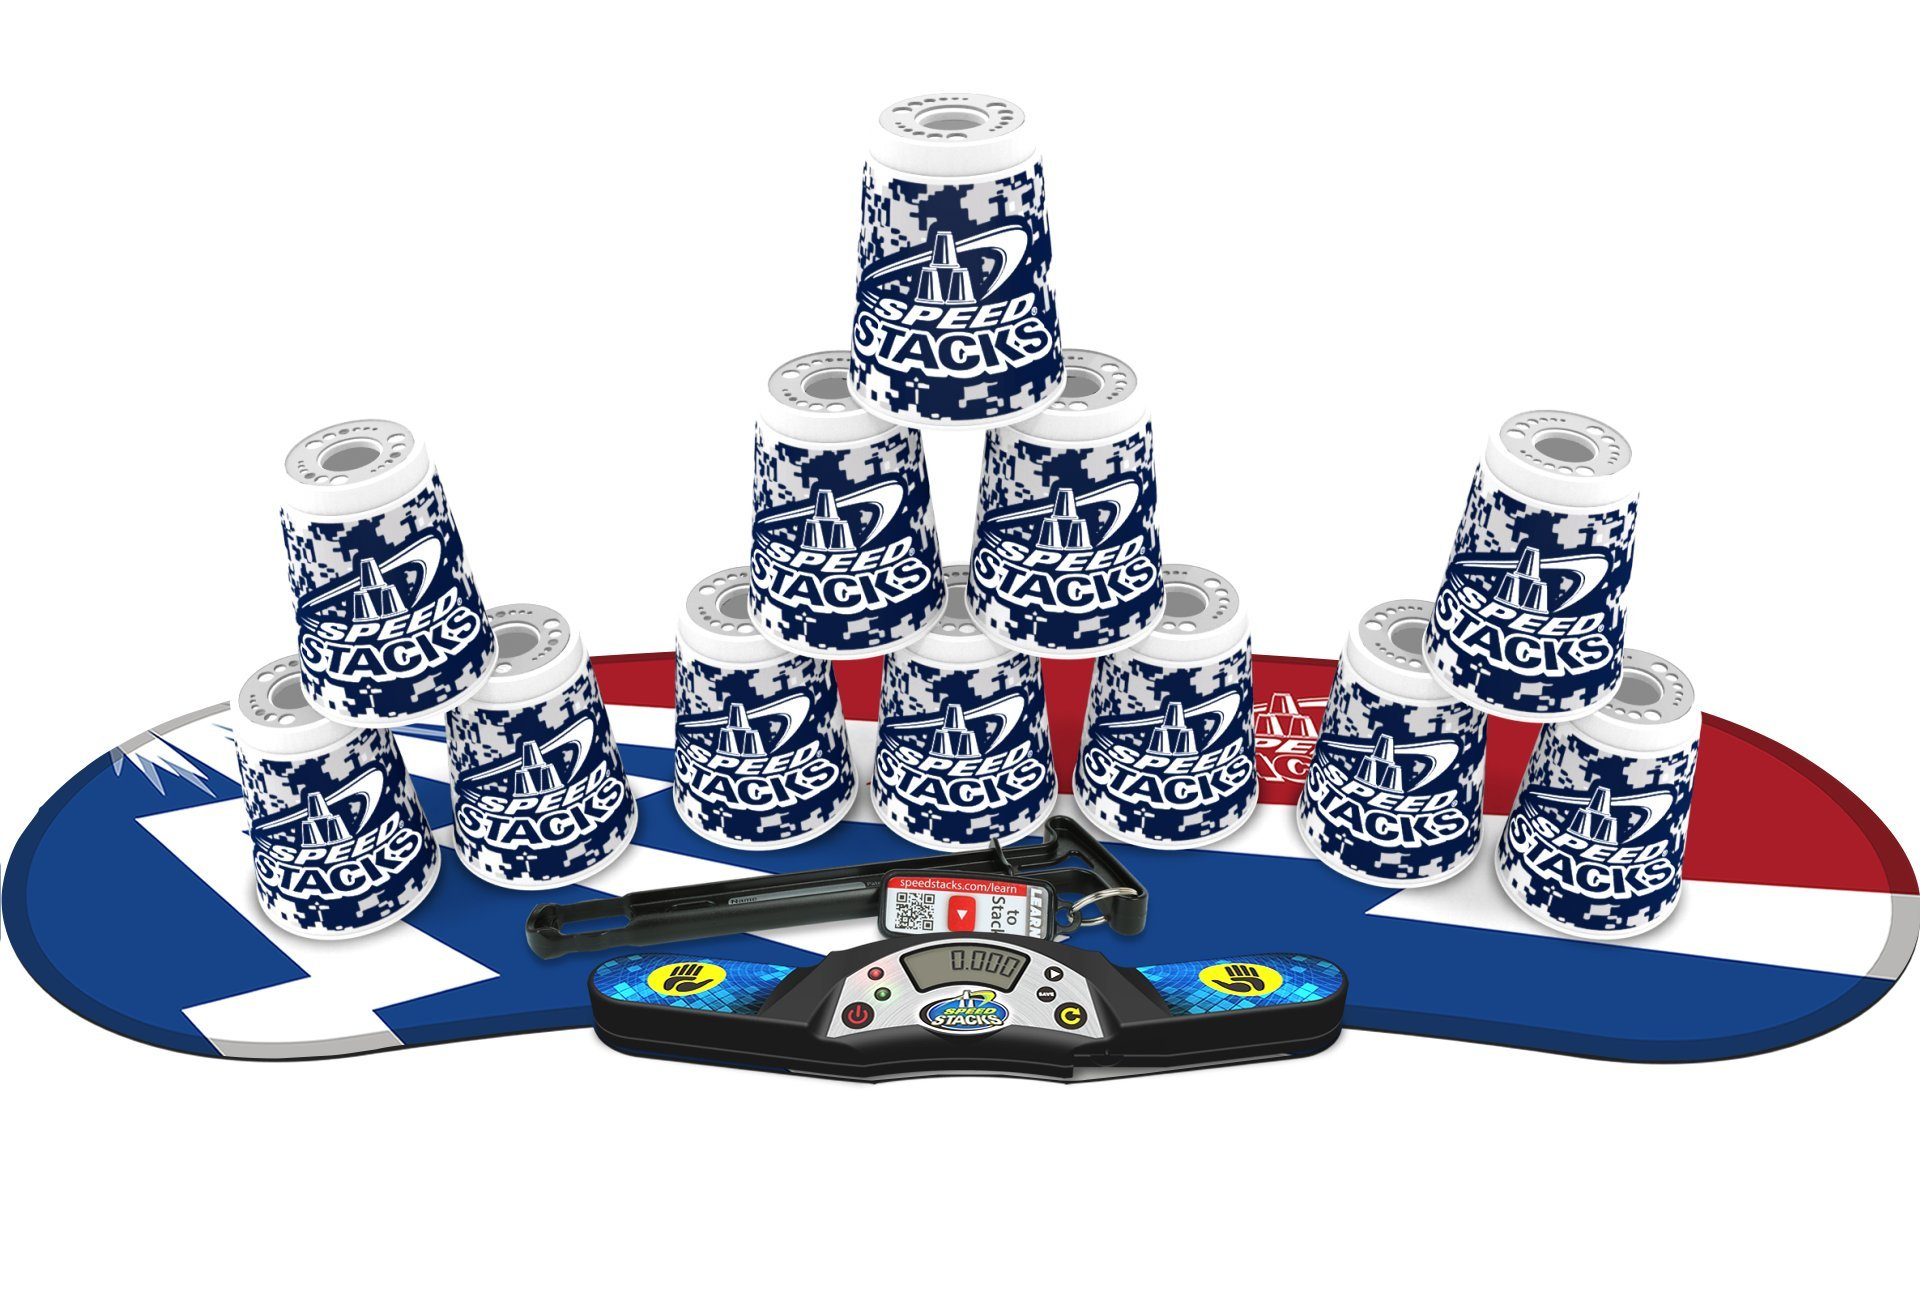 Speed Stacks Competitor - Digital Camo w/ Atomic Punch Mat